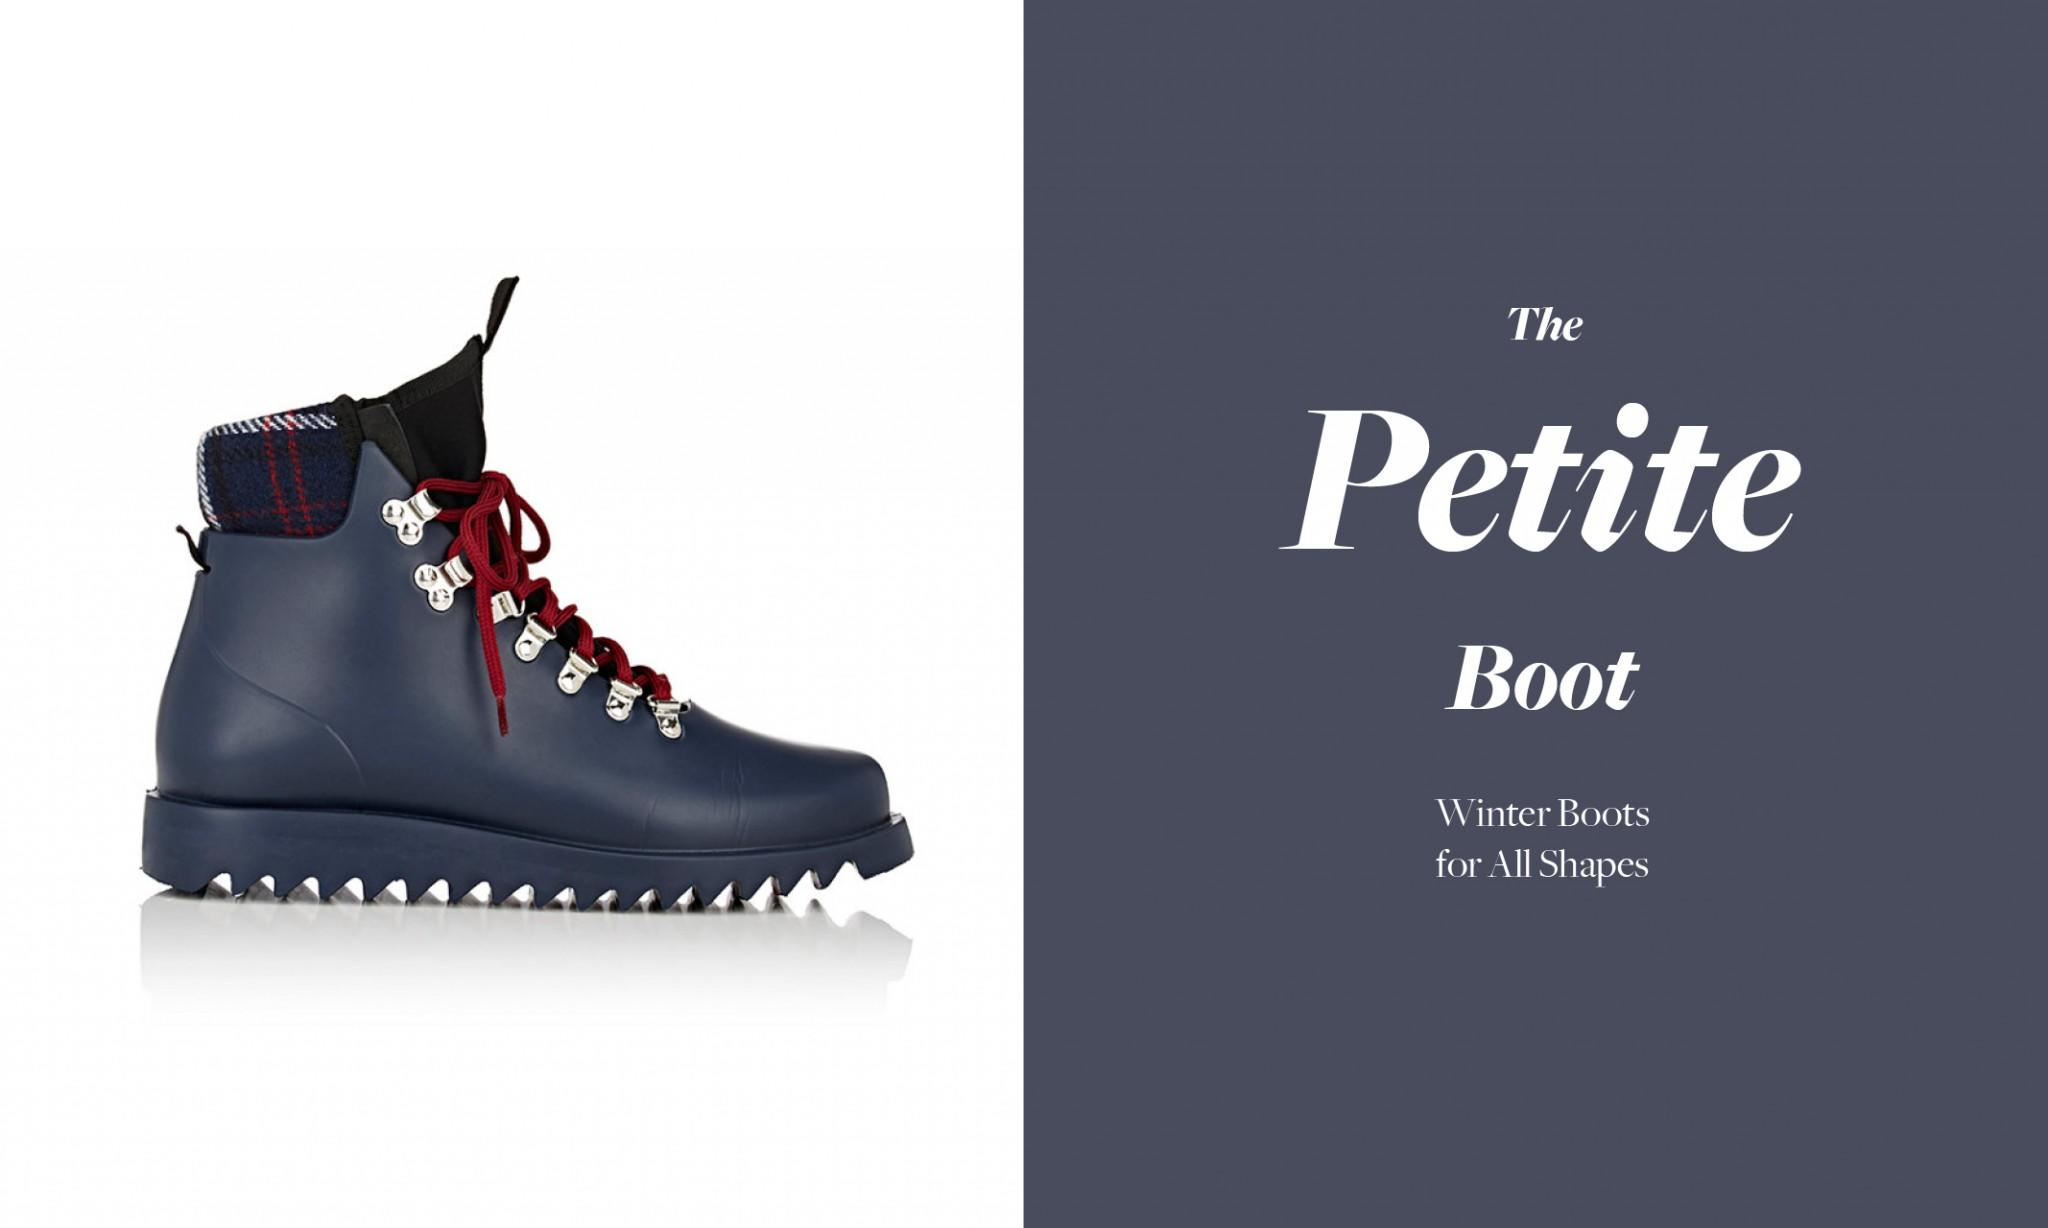 572899ddeb67 Shop Now: The Boots You Need to Buy if You're Petite, Tall, or Have ...